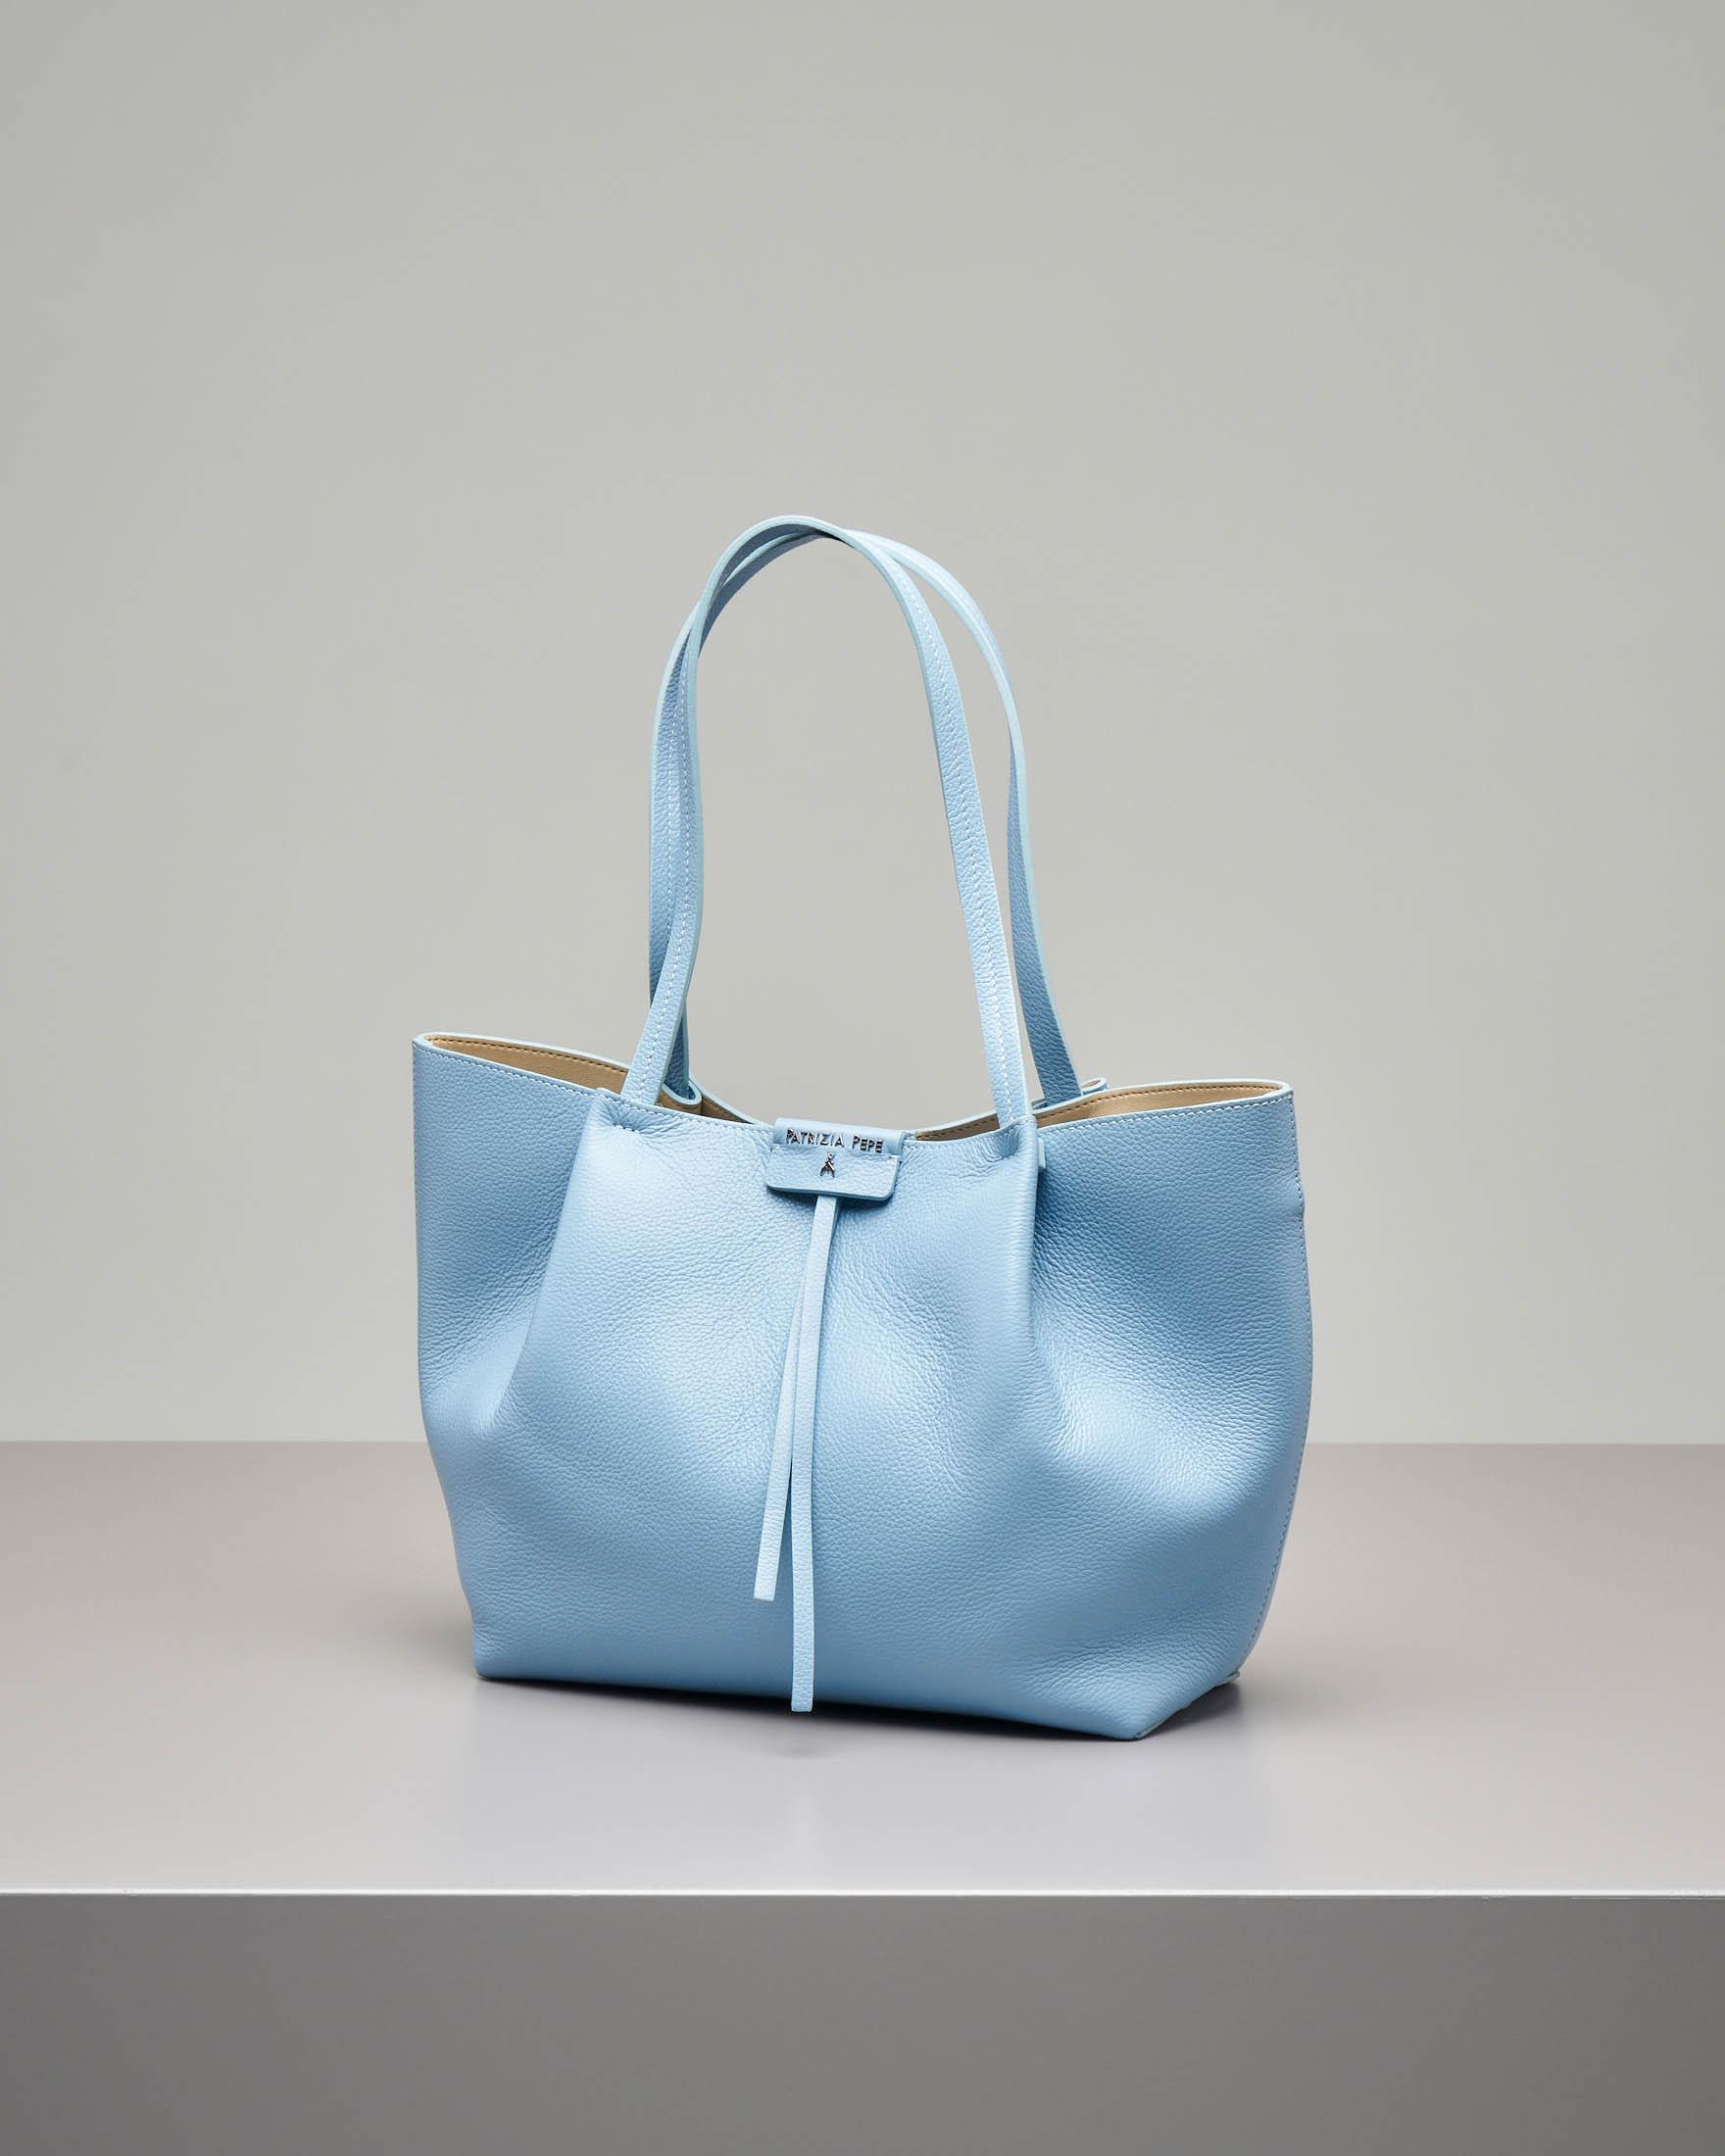 Shopping bag azzurra in pelle di vitello martellata con pochette interna